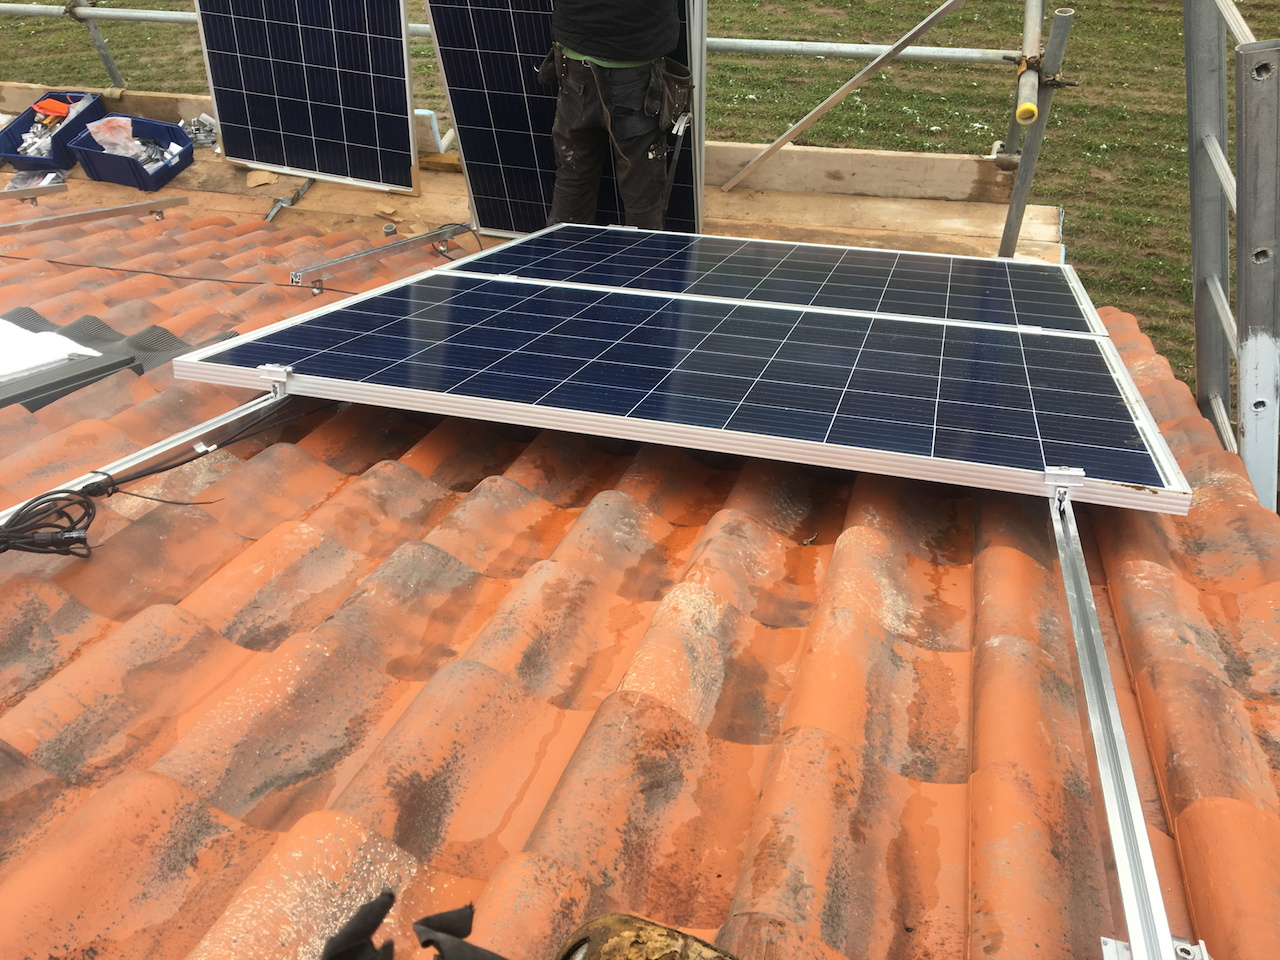 https://www.bluedotroofing.uk/wp-content/uploads/2018/02/Solar-PV-Installtion-South-Clifton-Lincs-2.png